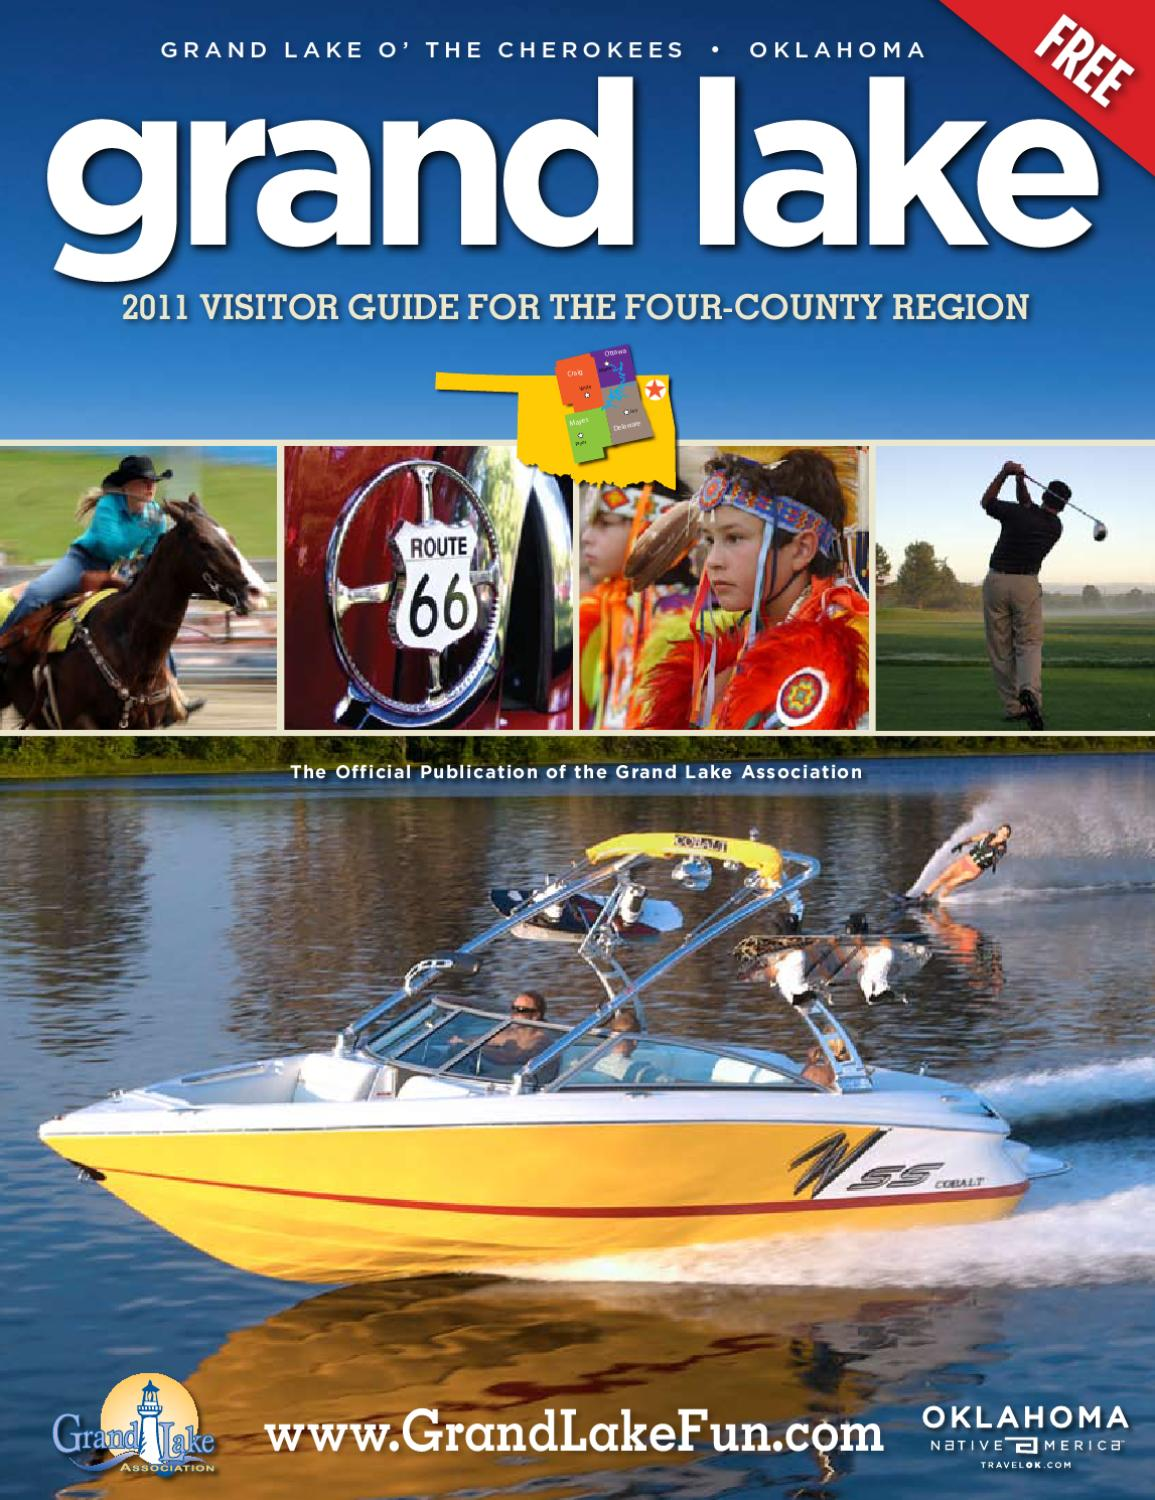 Grand Lake 2011 Visitor Guide By Grand Lake Association